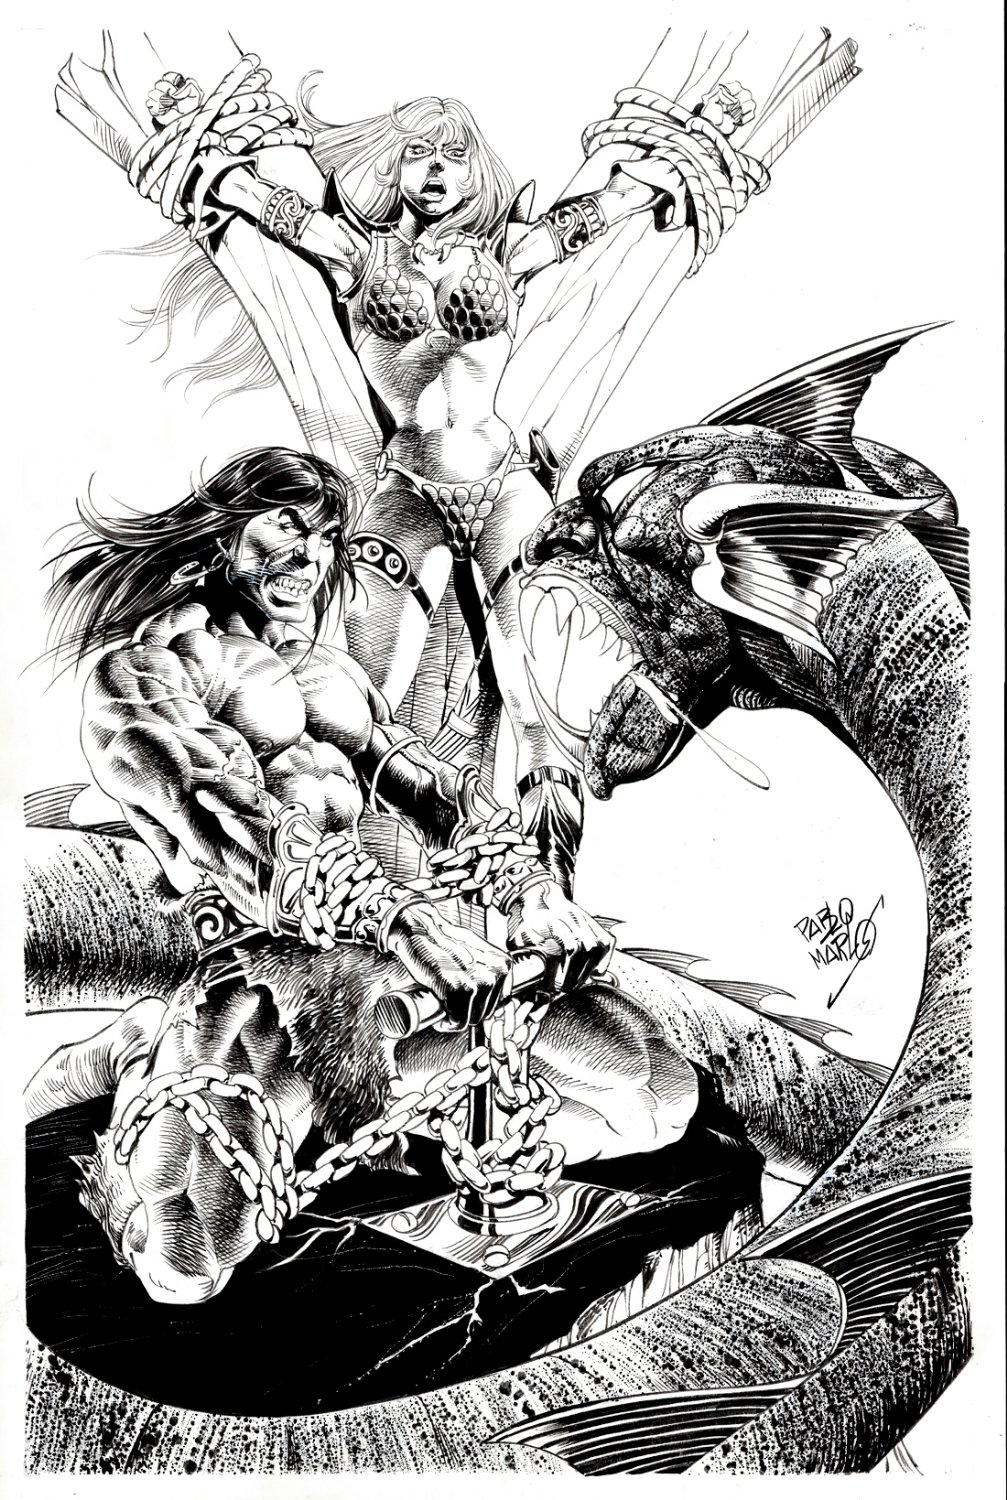 Conan & Red Sonja (SOLD LIVE ON 'DUELING DEALERS OF COMIC ART' EPISODE #38 PODCAST ON 9-29-2021(RE-WATCH THIS FUNNY ART SELLING SHOW HERE)